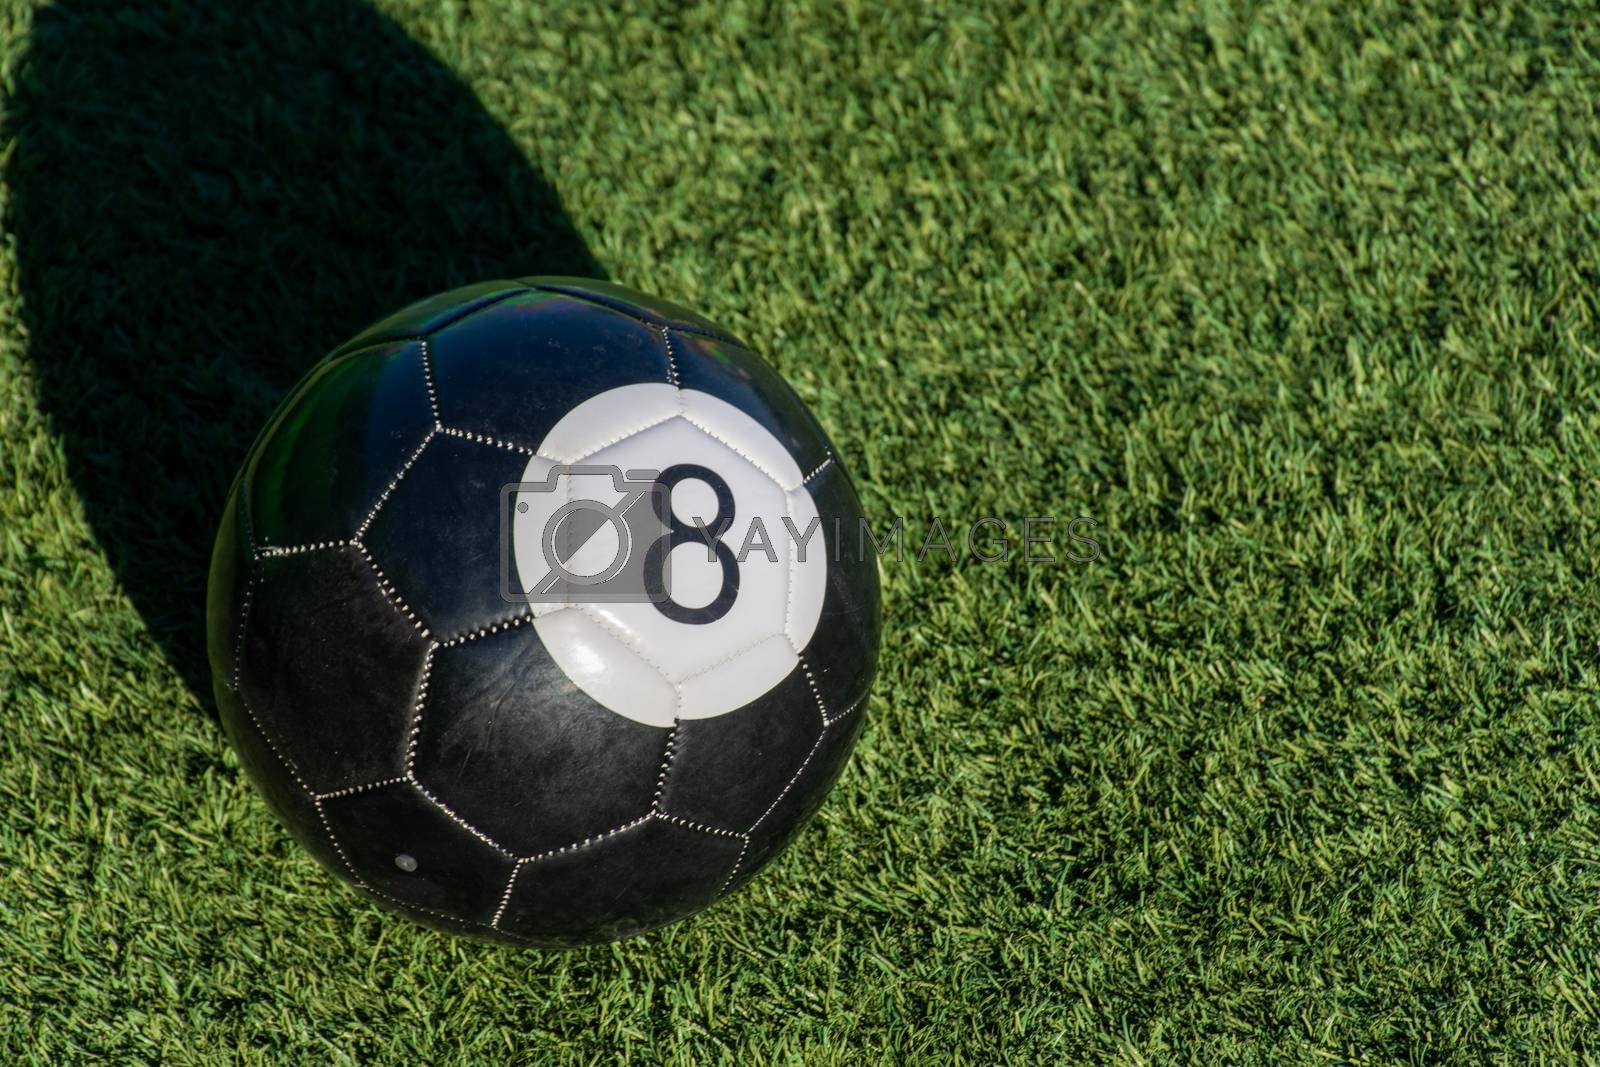 Black Eight (8) ball a soccer billiards or pool ball on green grass with a shadow and copy space. Concept of sports, recreation and childhood fun.